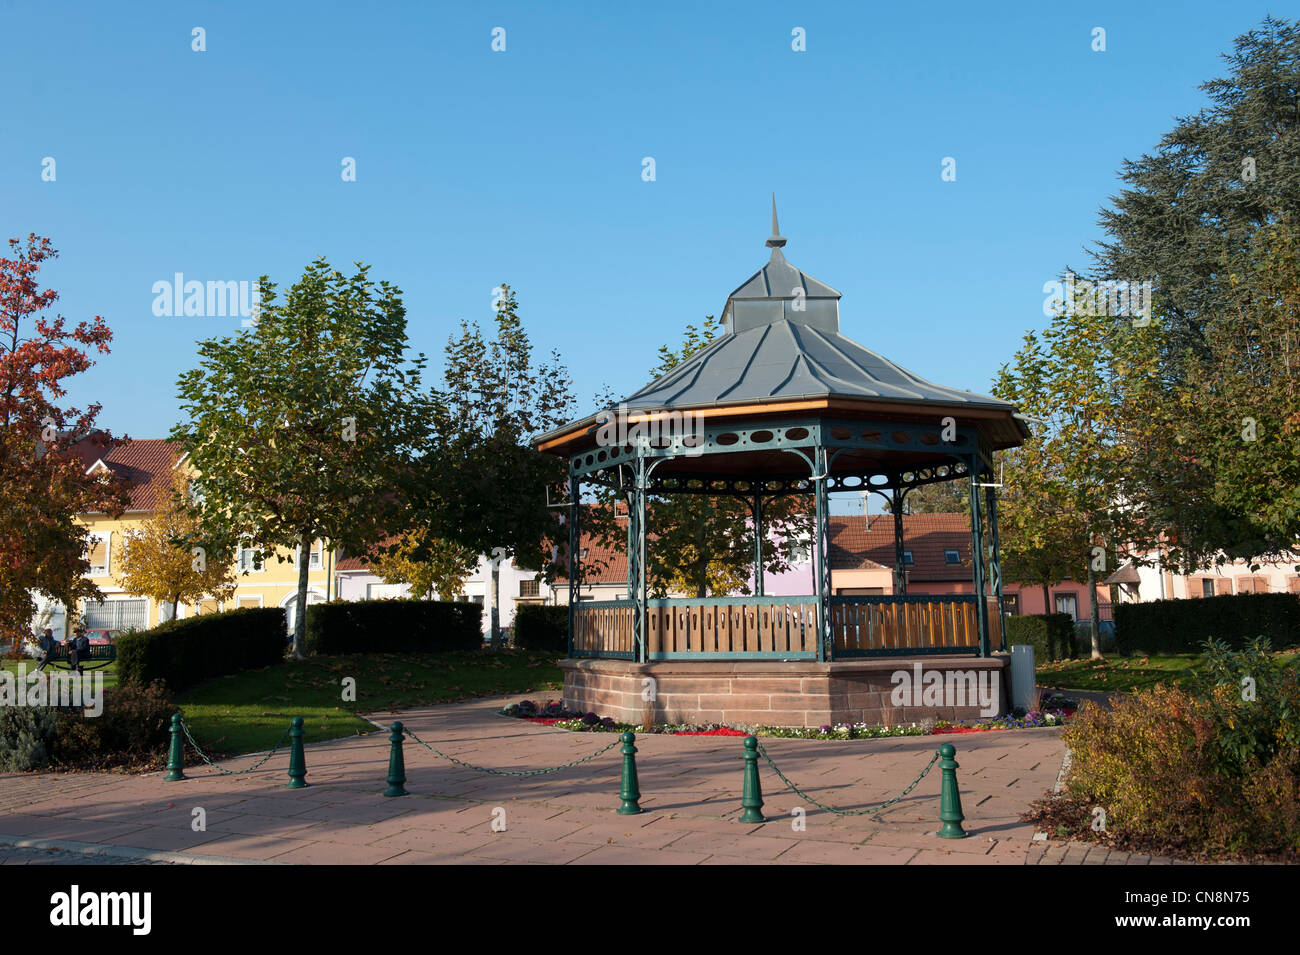 France, Bas Rhin, Bischwiller, bandstand on the station square - Stock Image